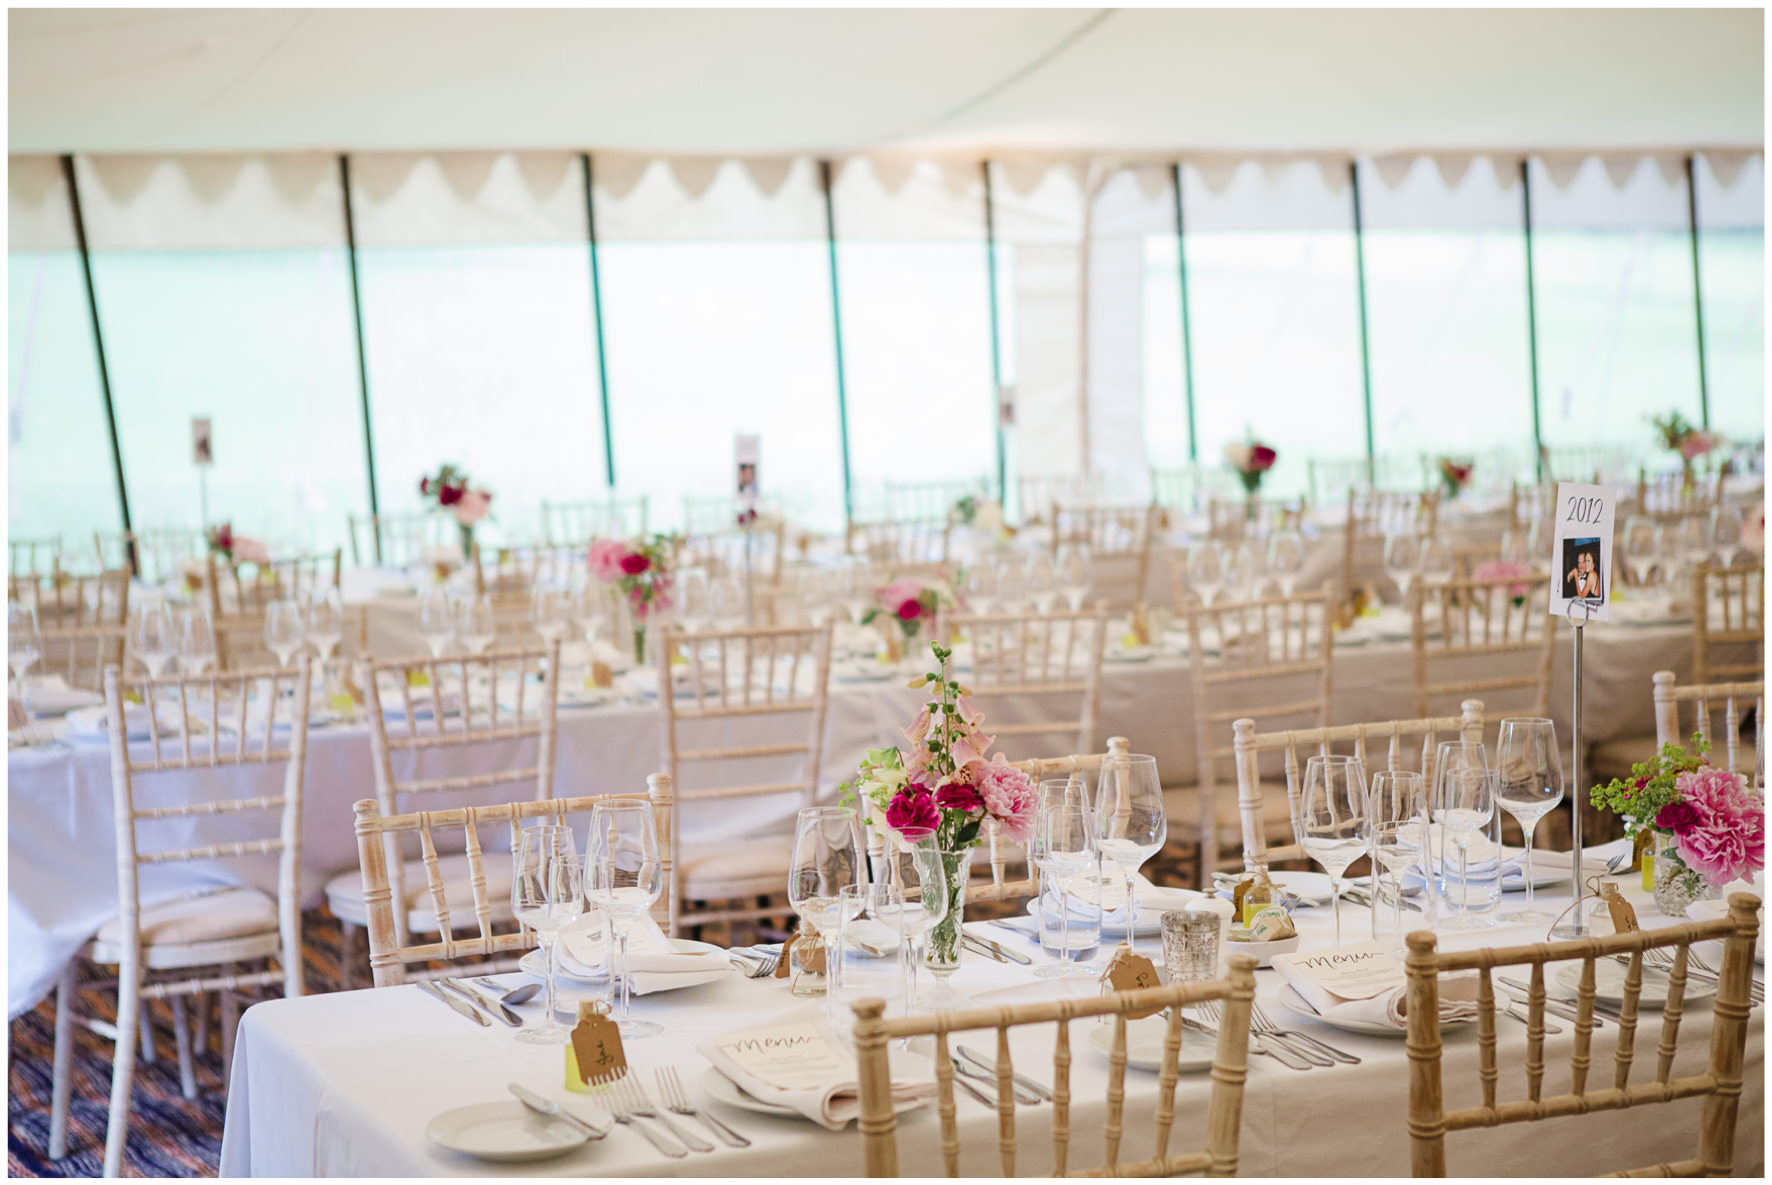 Lucy Davenport Photography, Cornwell Manor, wedding venue, Oxfordshire, Cotswold wedding, marquee, marquee wedding, wedding breakfast